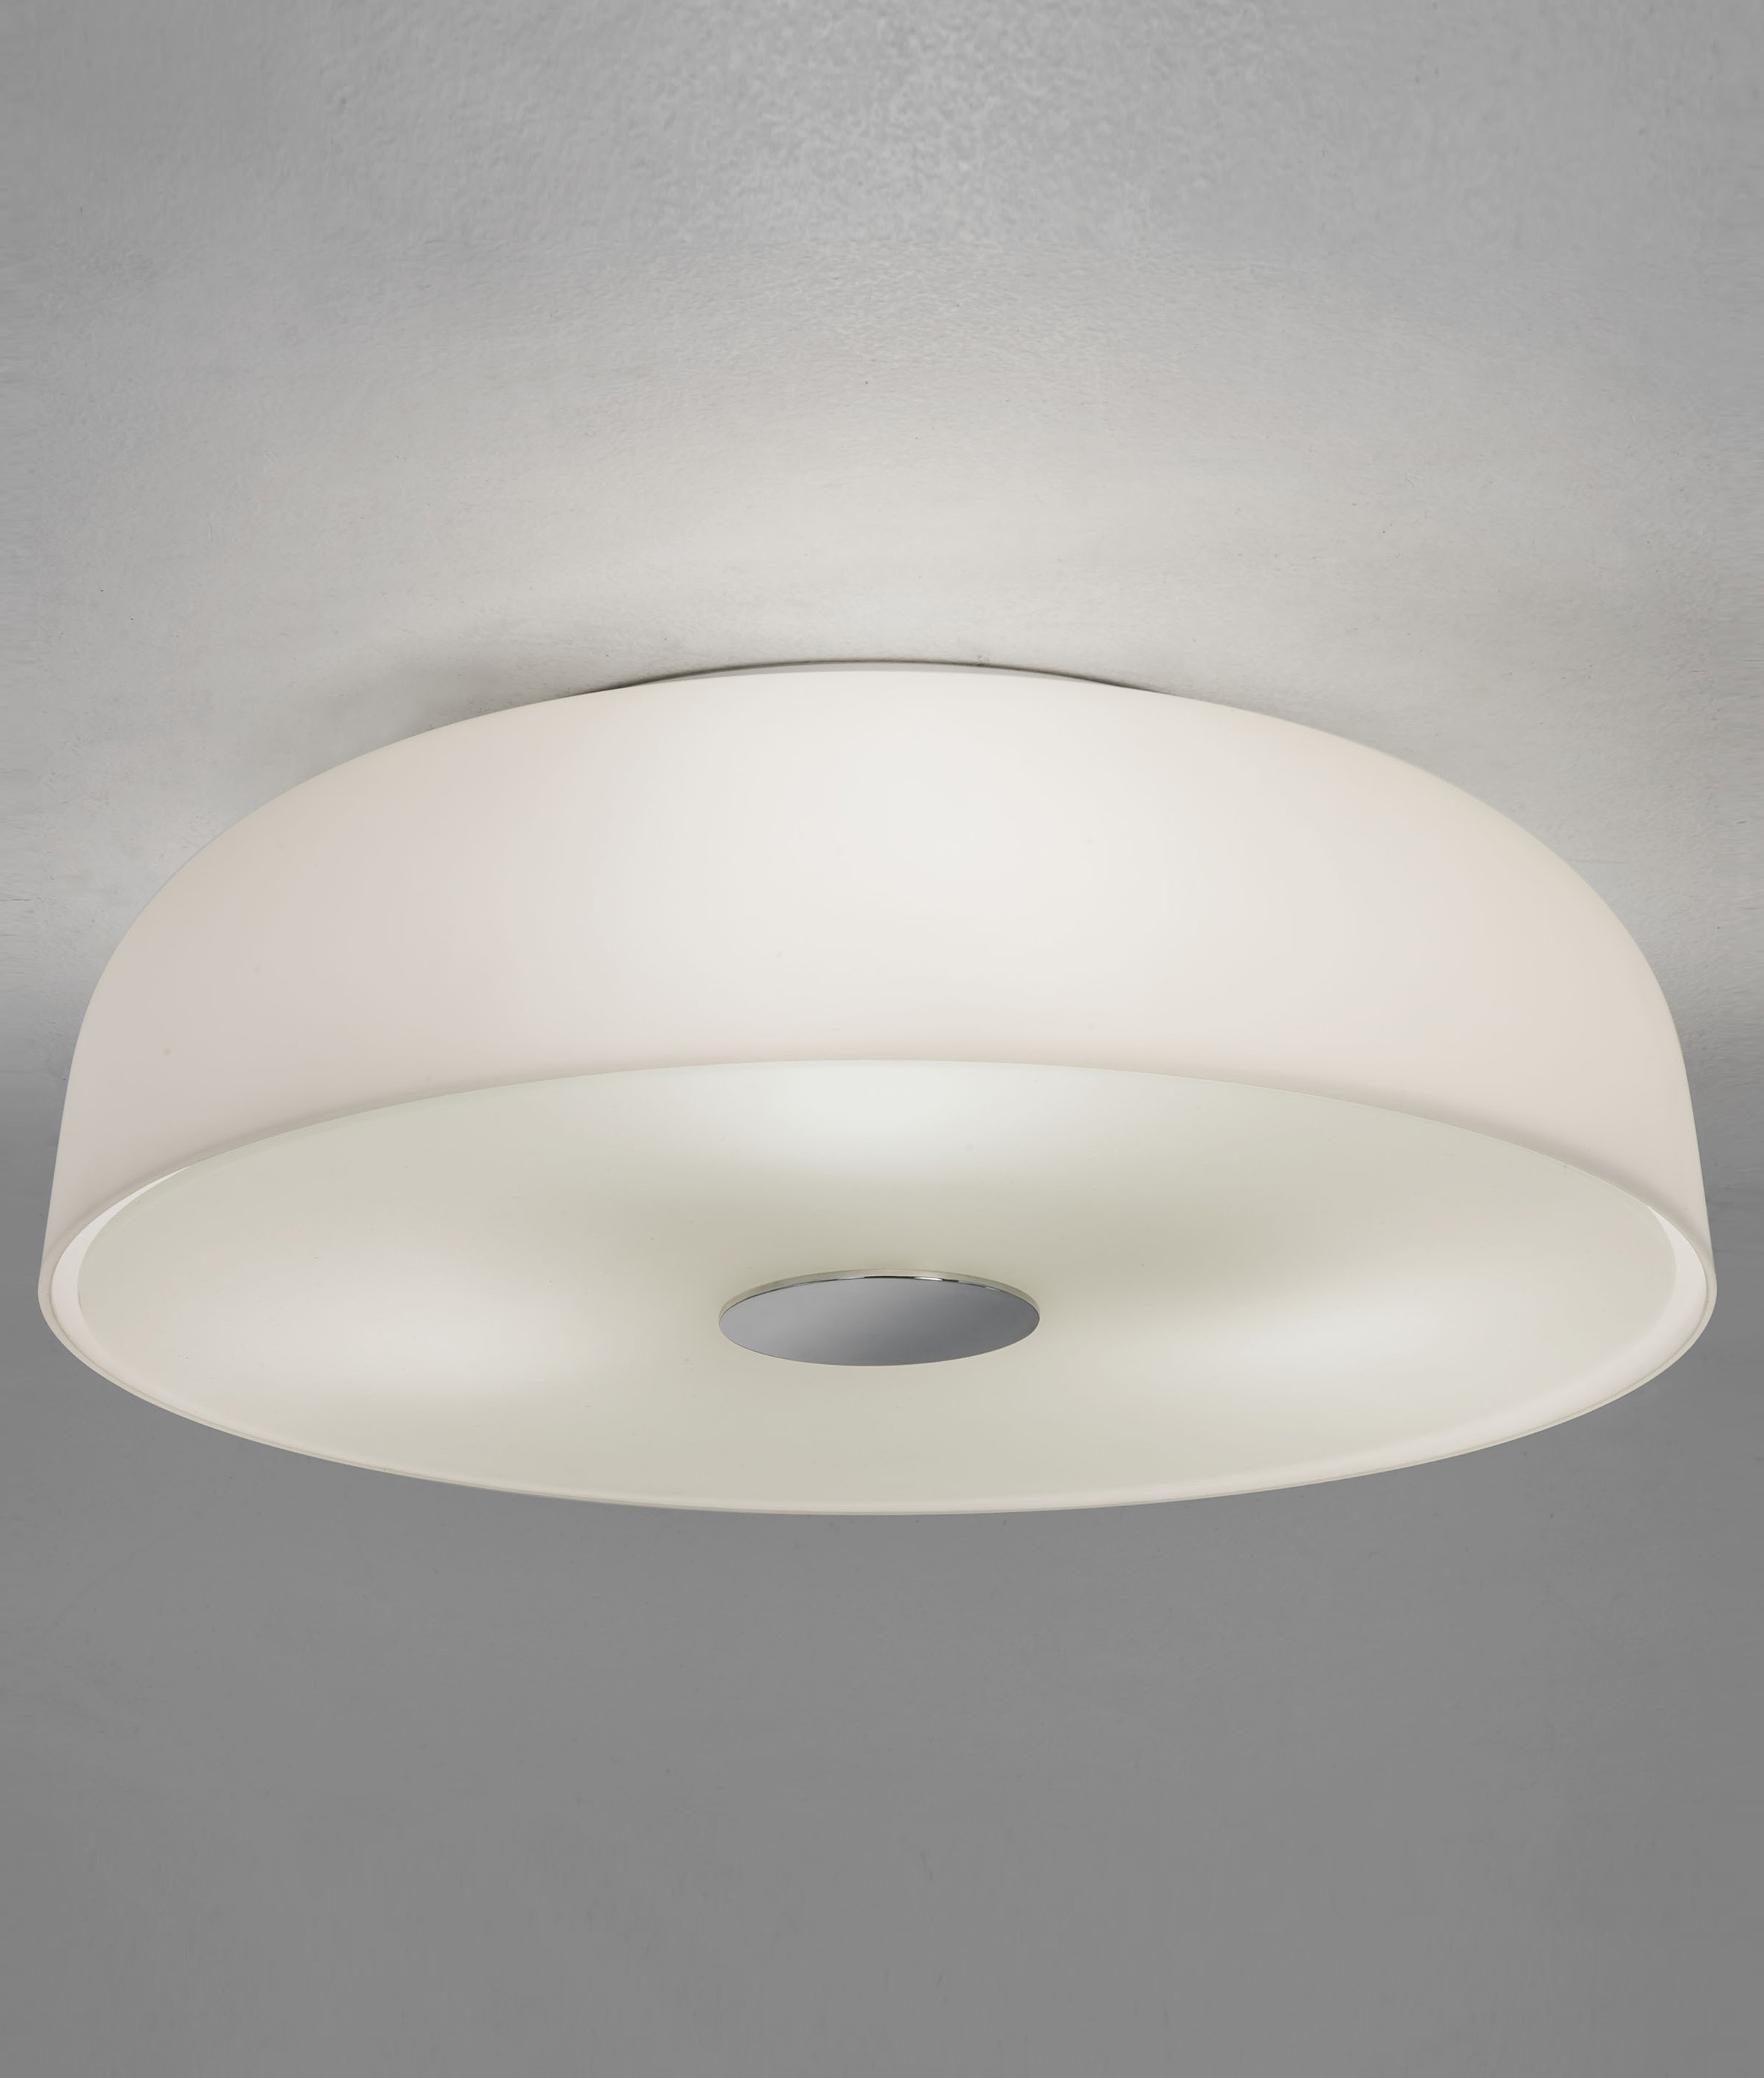 Flush Round Opal Glass Ceiling Light Bathroom Suitable